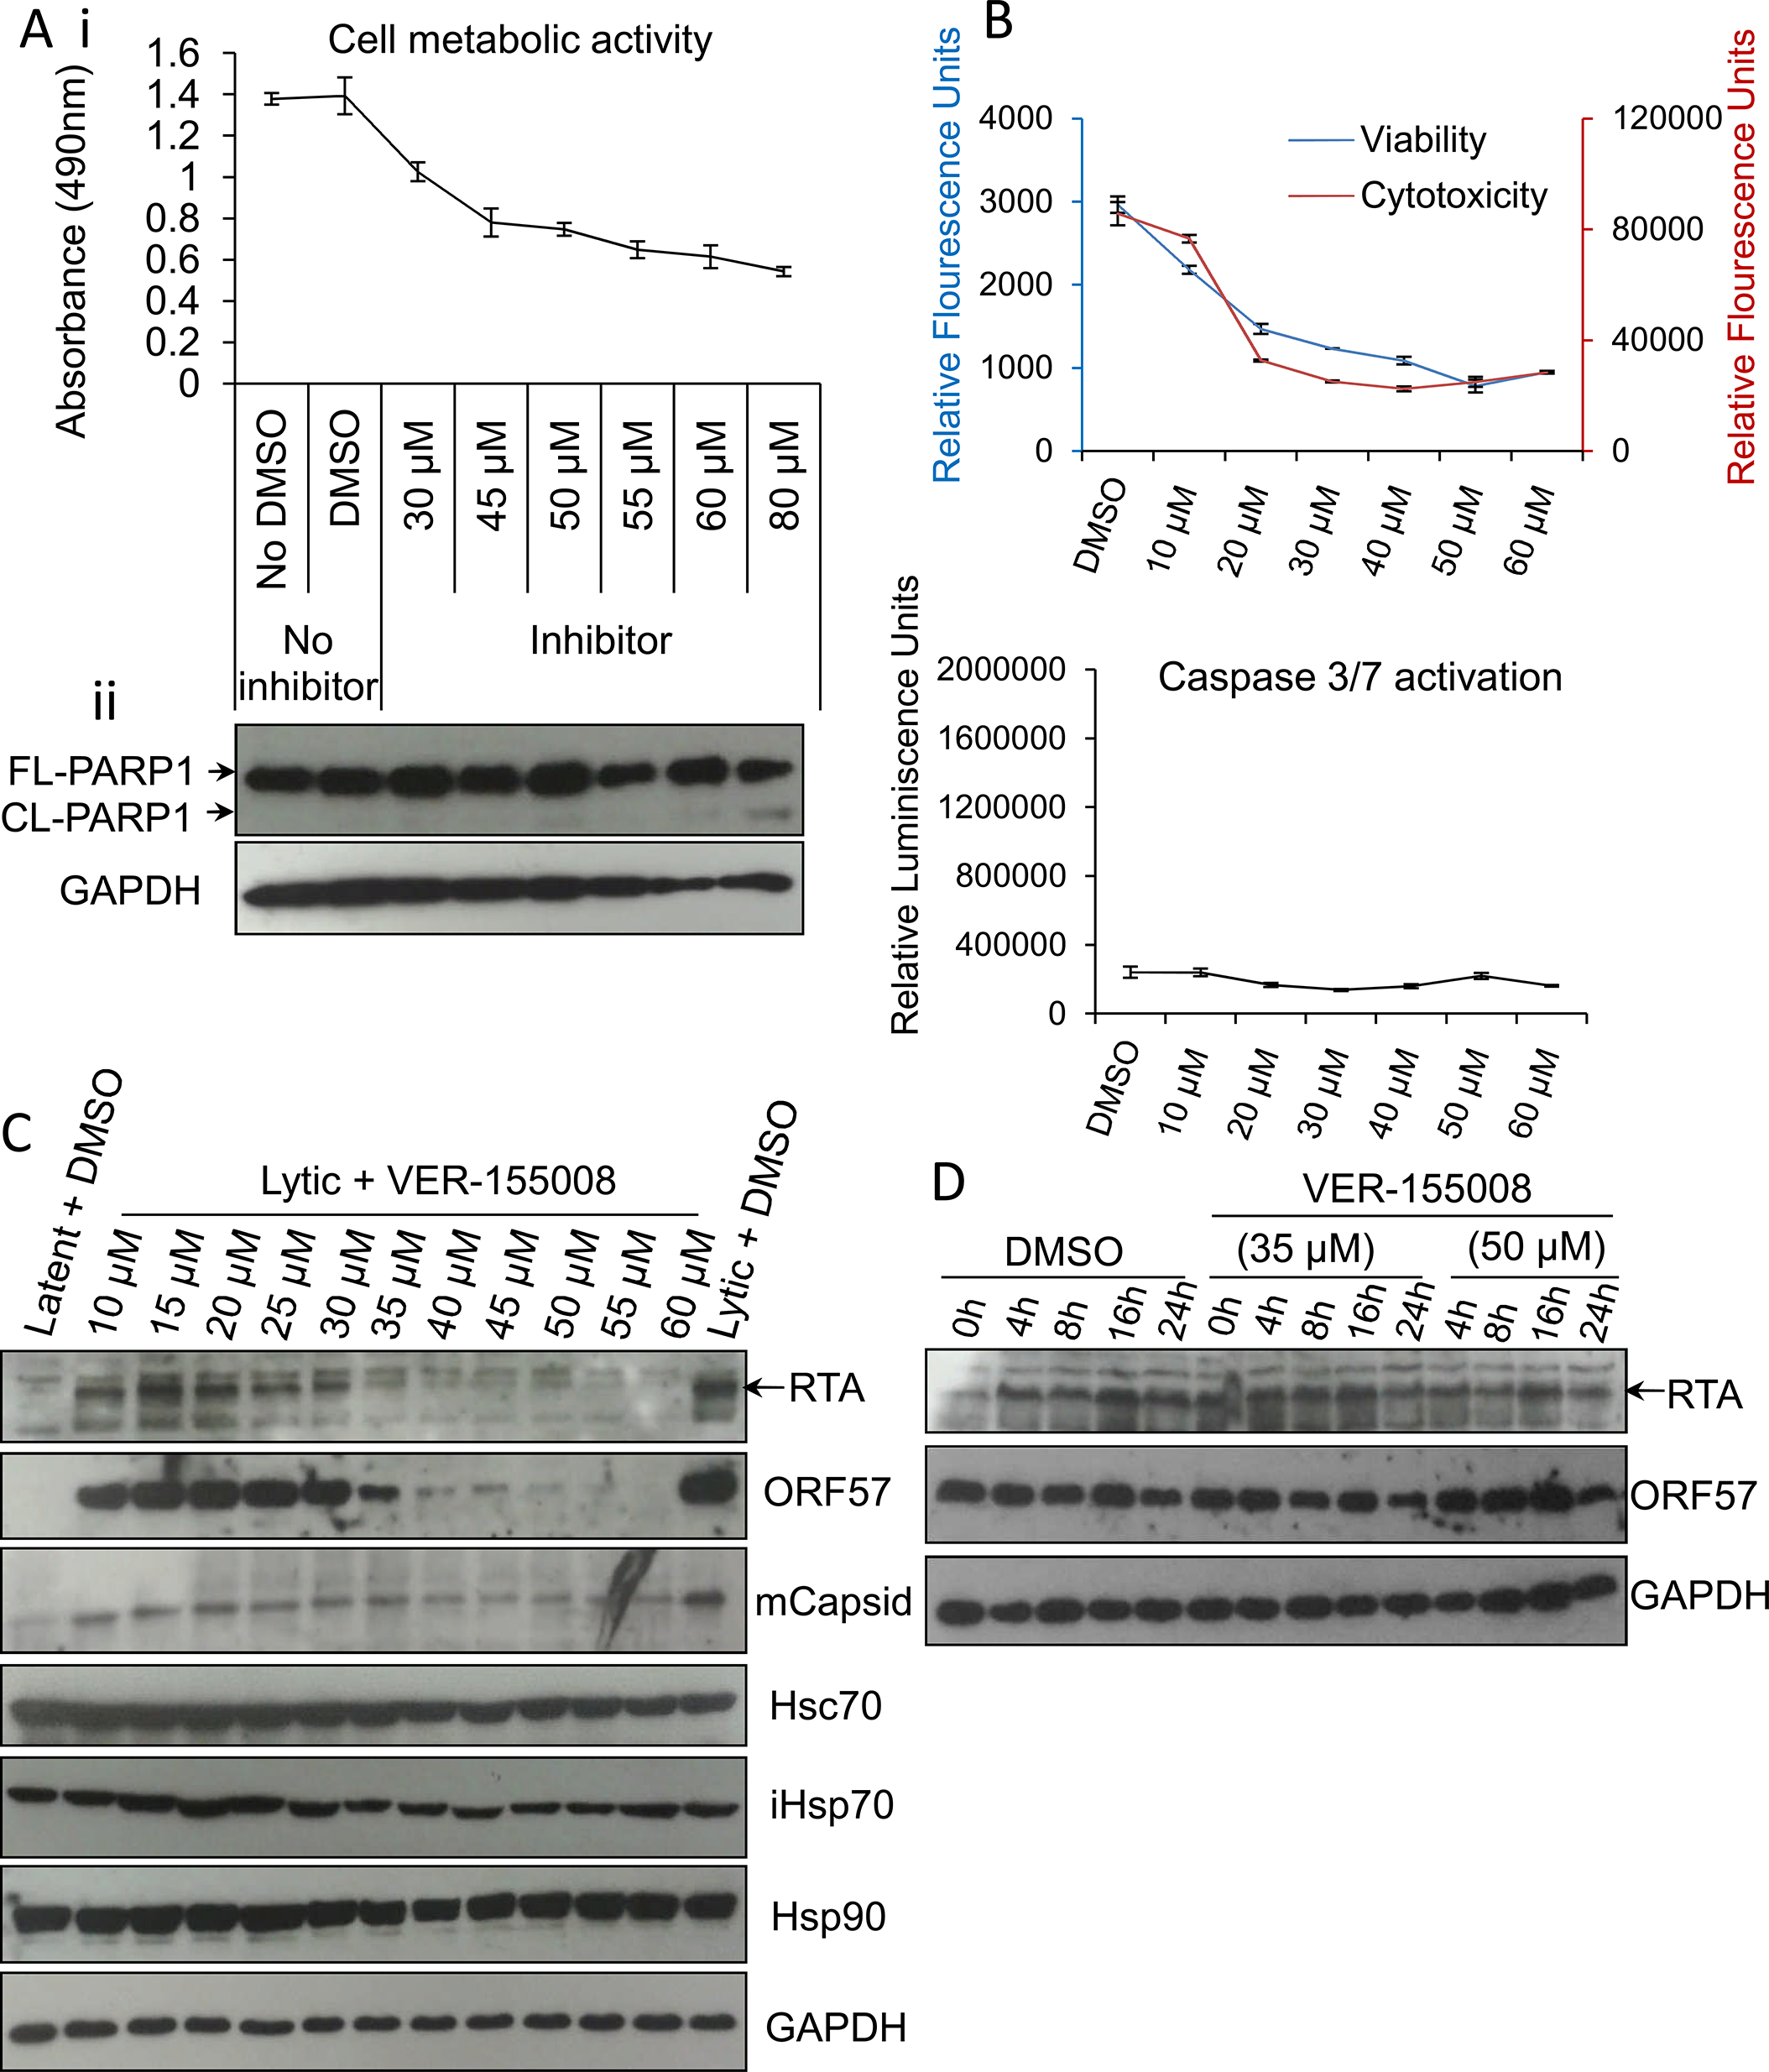 VER-155008 abrogated viral protein synthesis pre-translationally in HEK-293T rKSHV.219 cells.